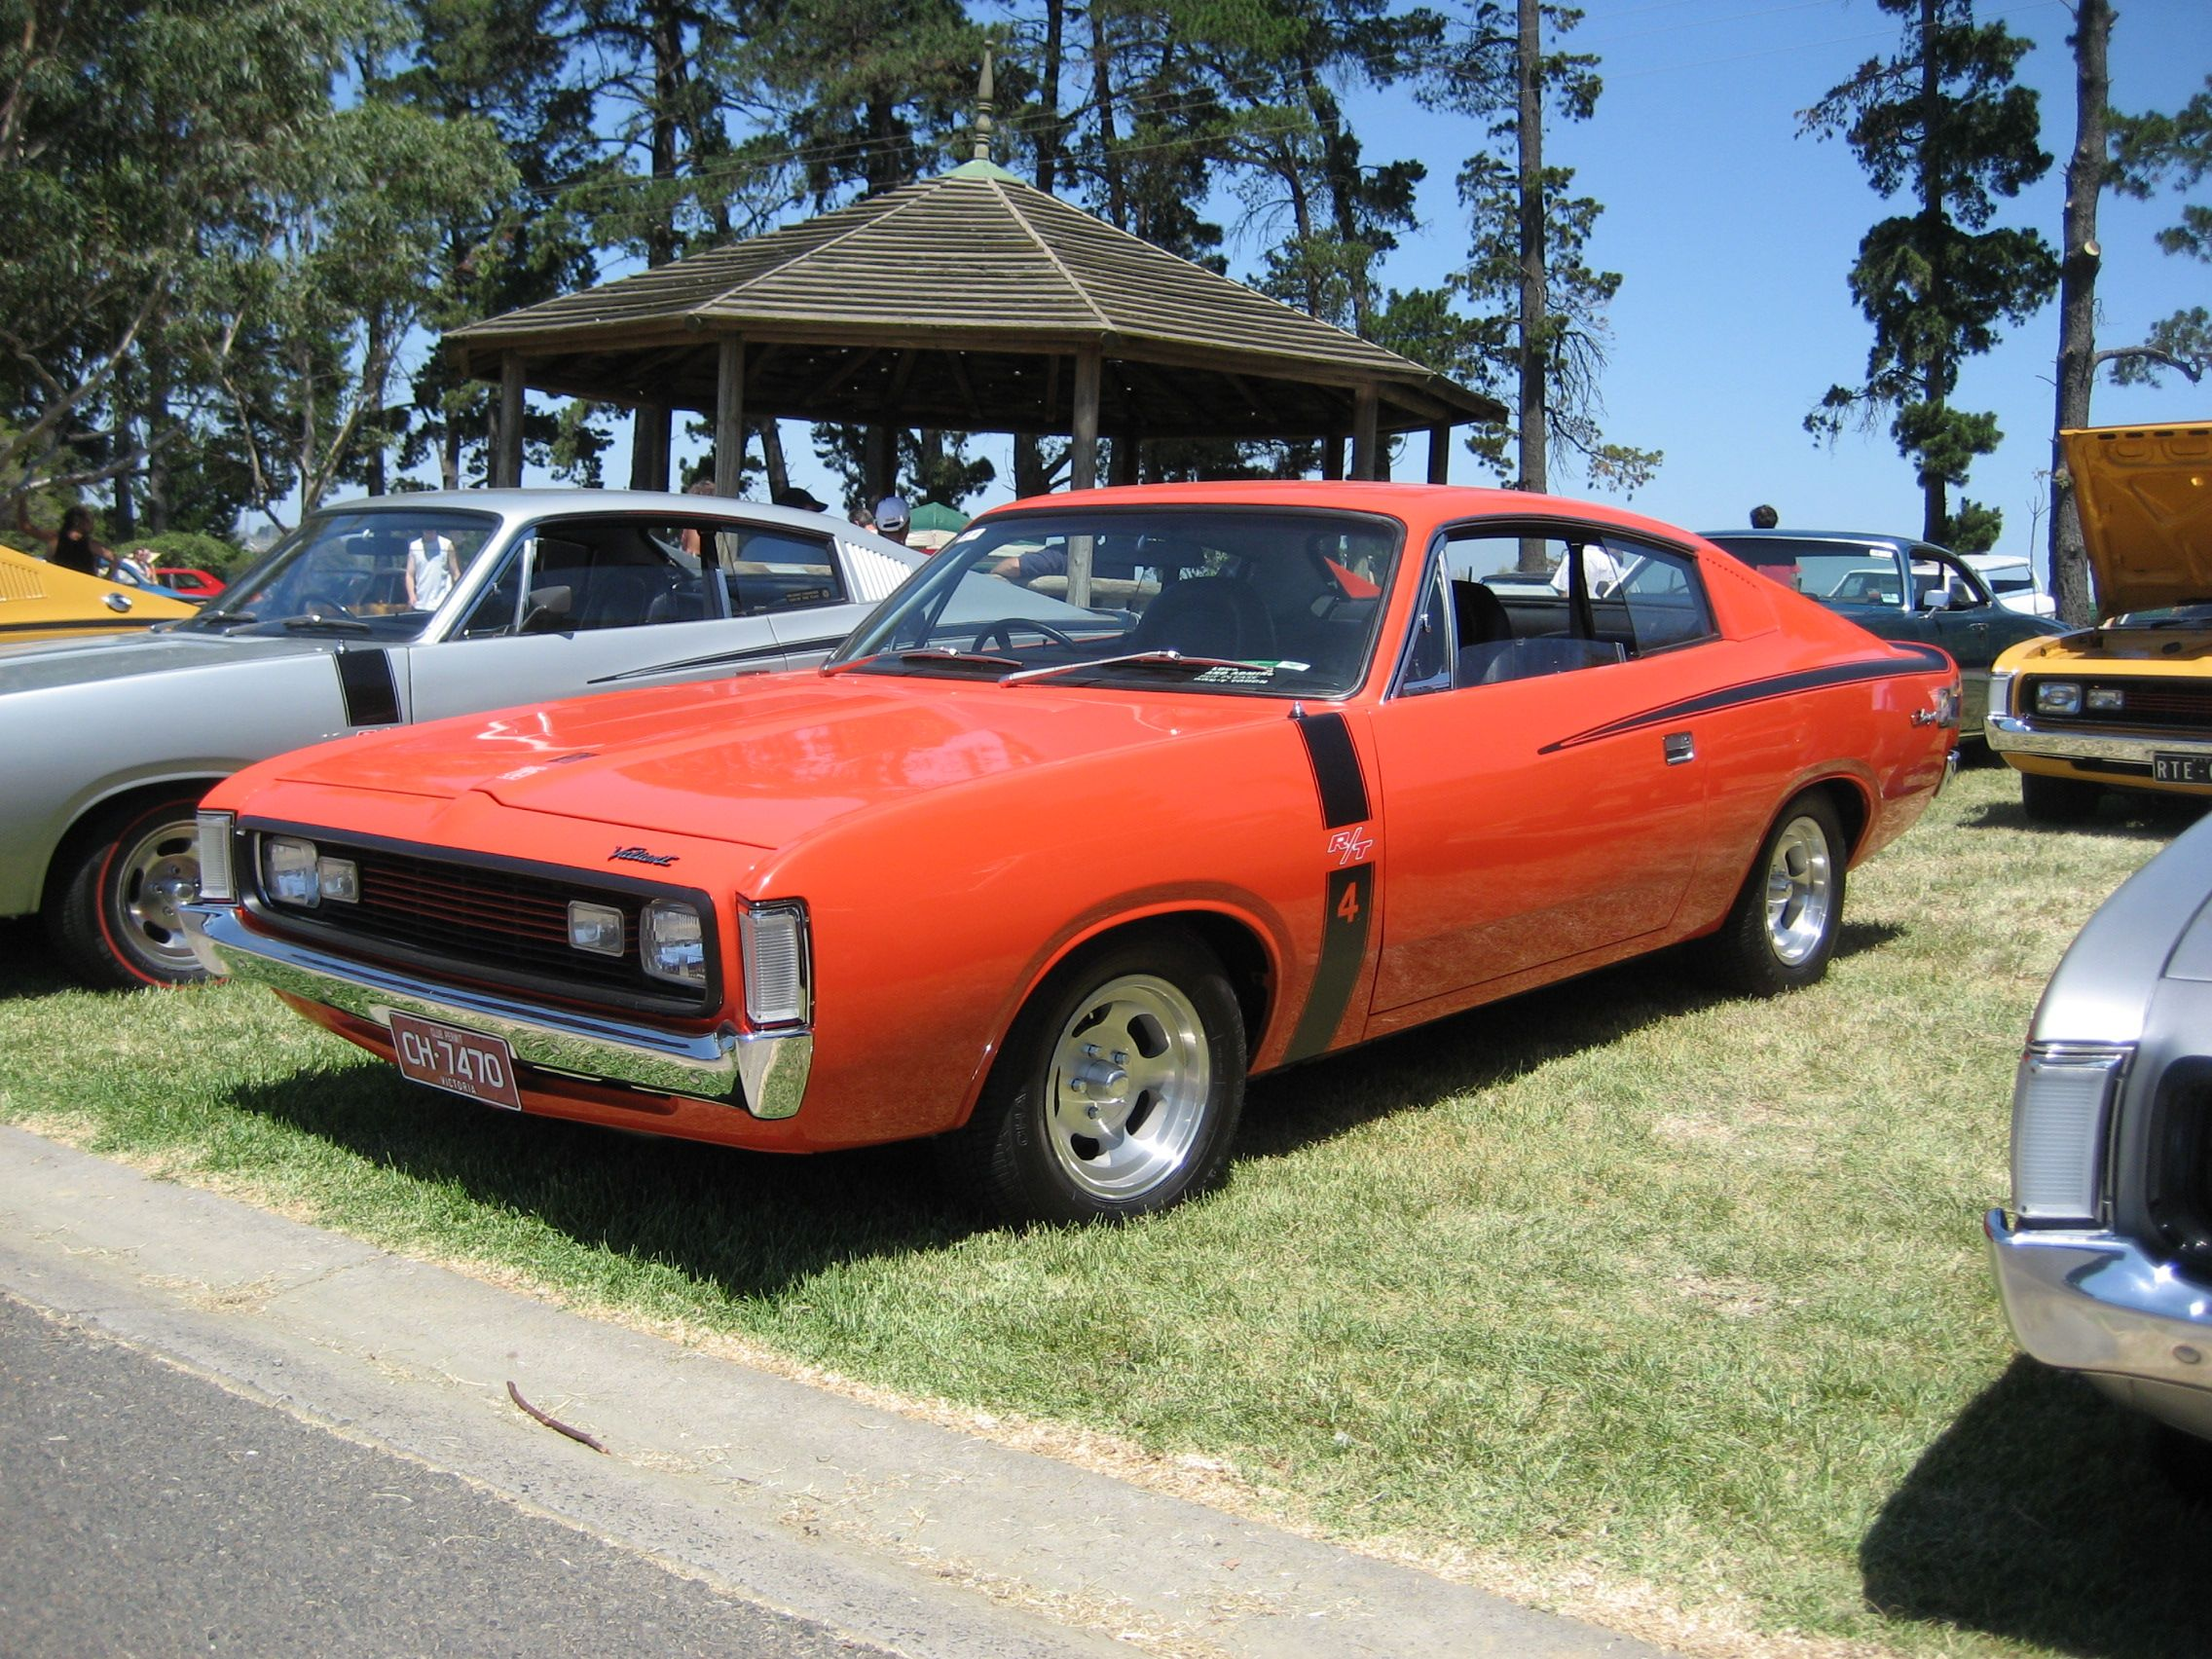 Chrysler Valiant Charger Vh With Images Chrysler Chrysler